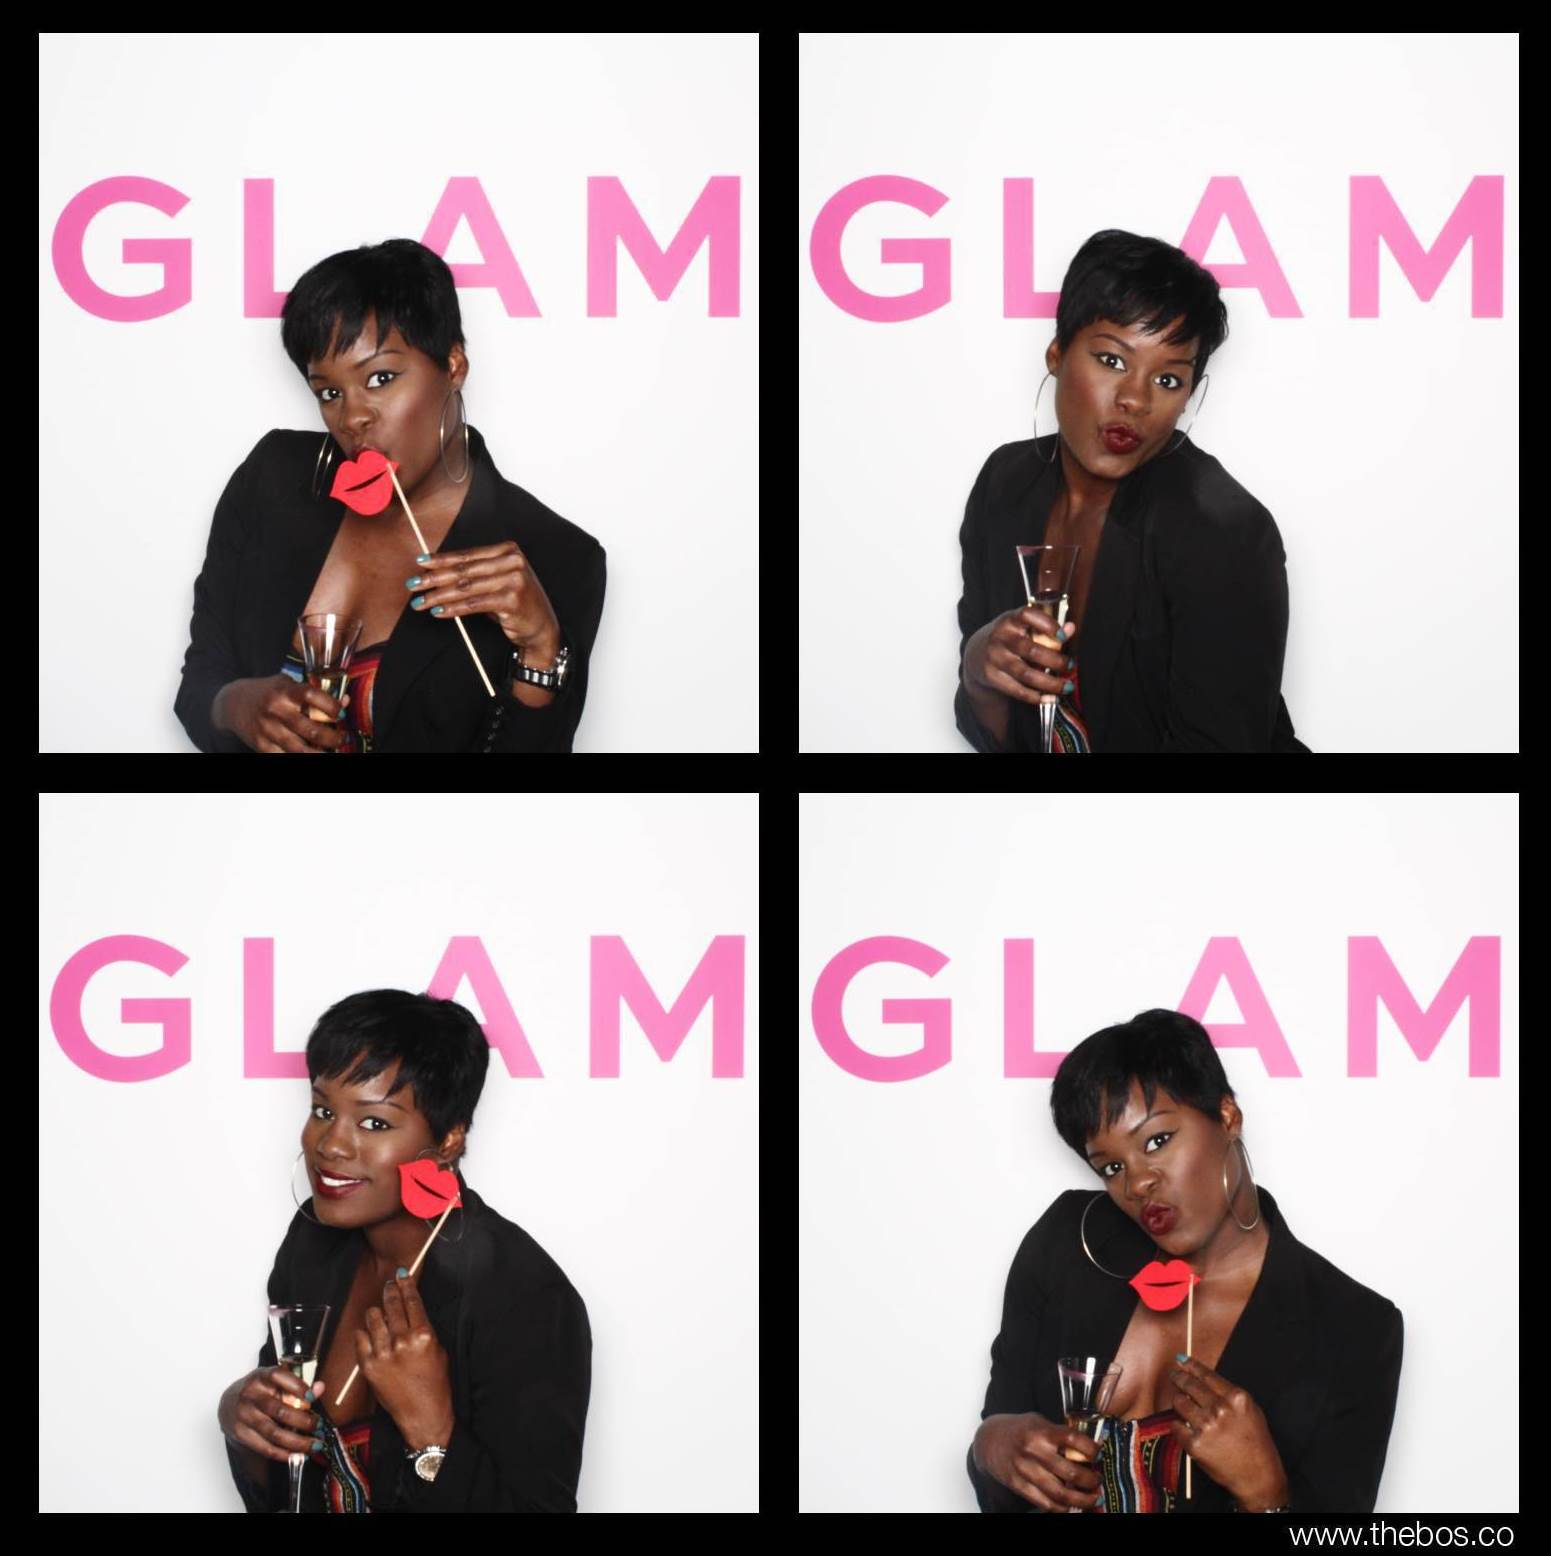 The Glamorous Gleam 5 Years Anniversary